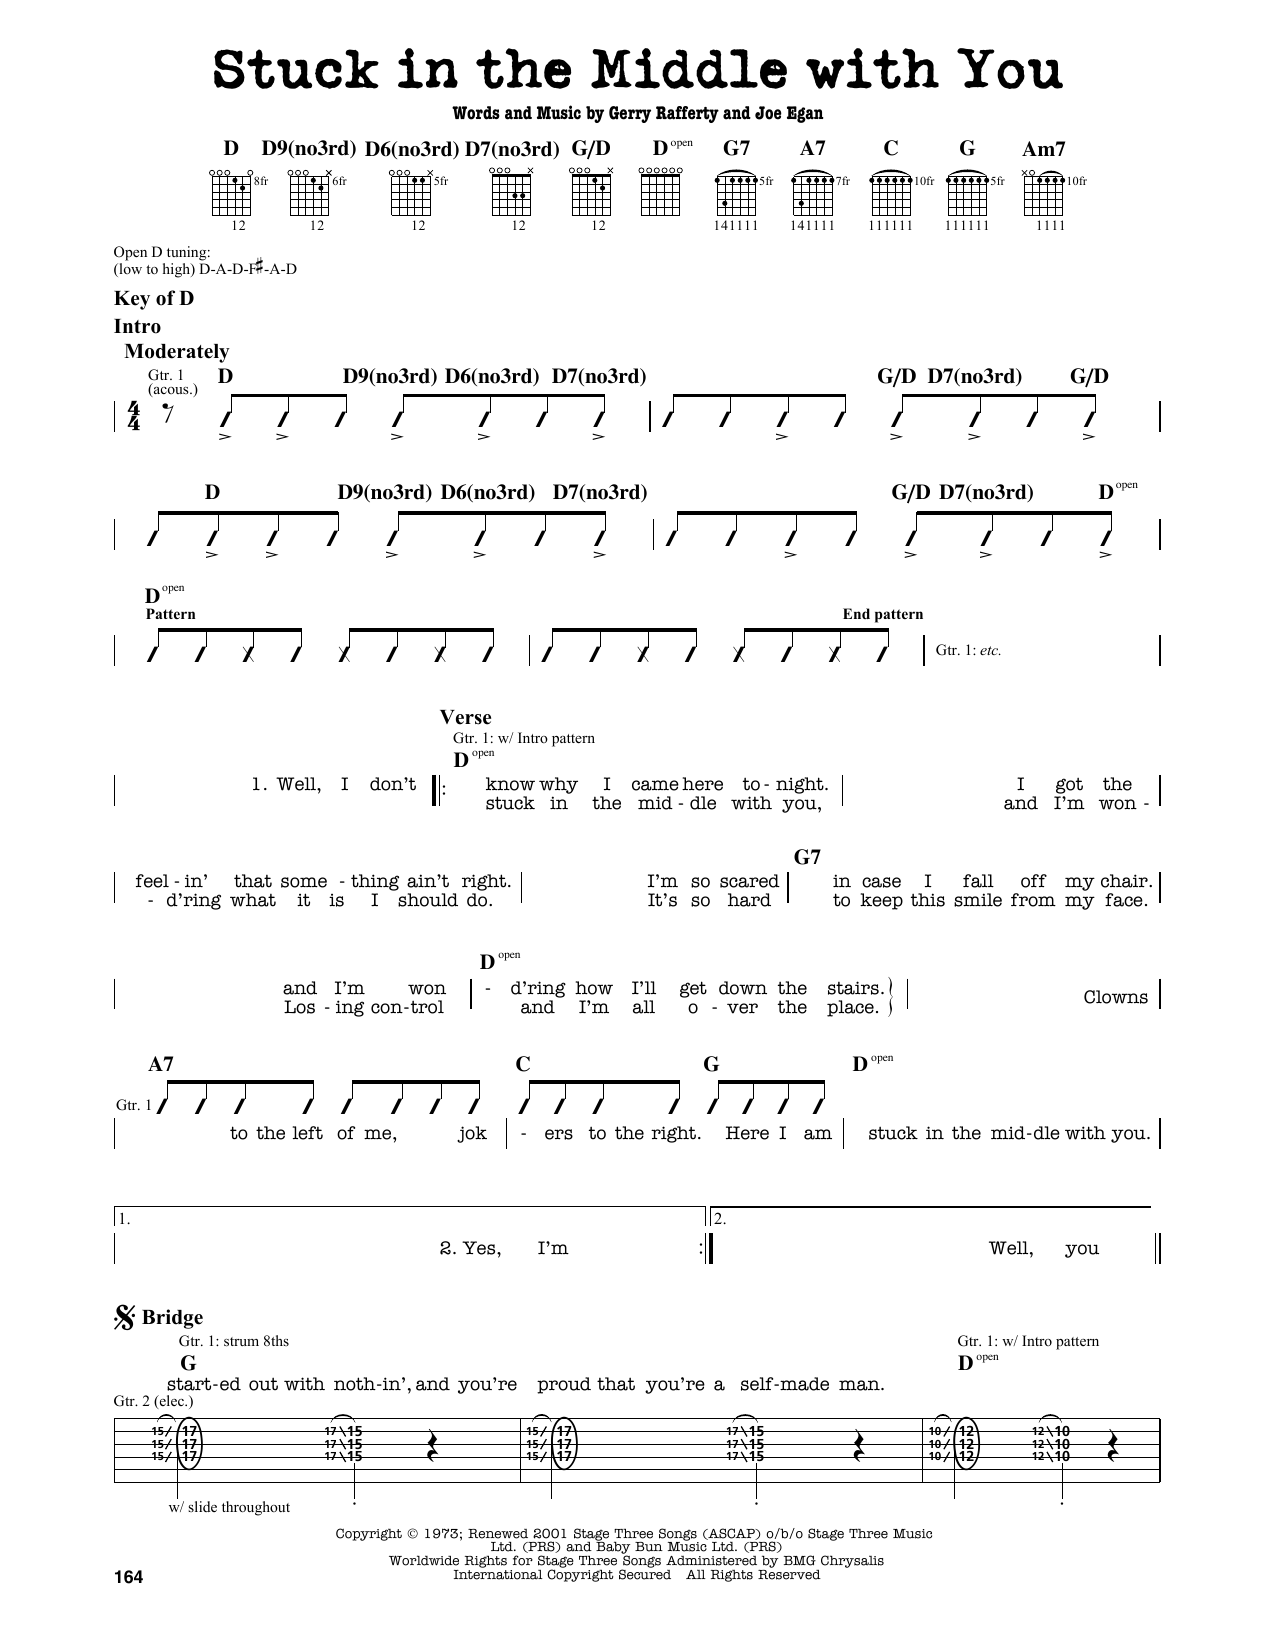 Stealers Wheel Stuck In The Middle With You Sheet Music Notes